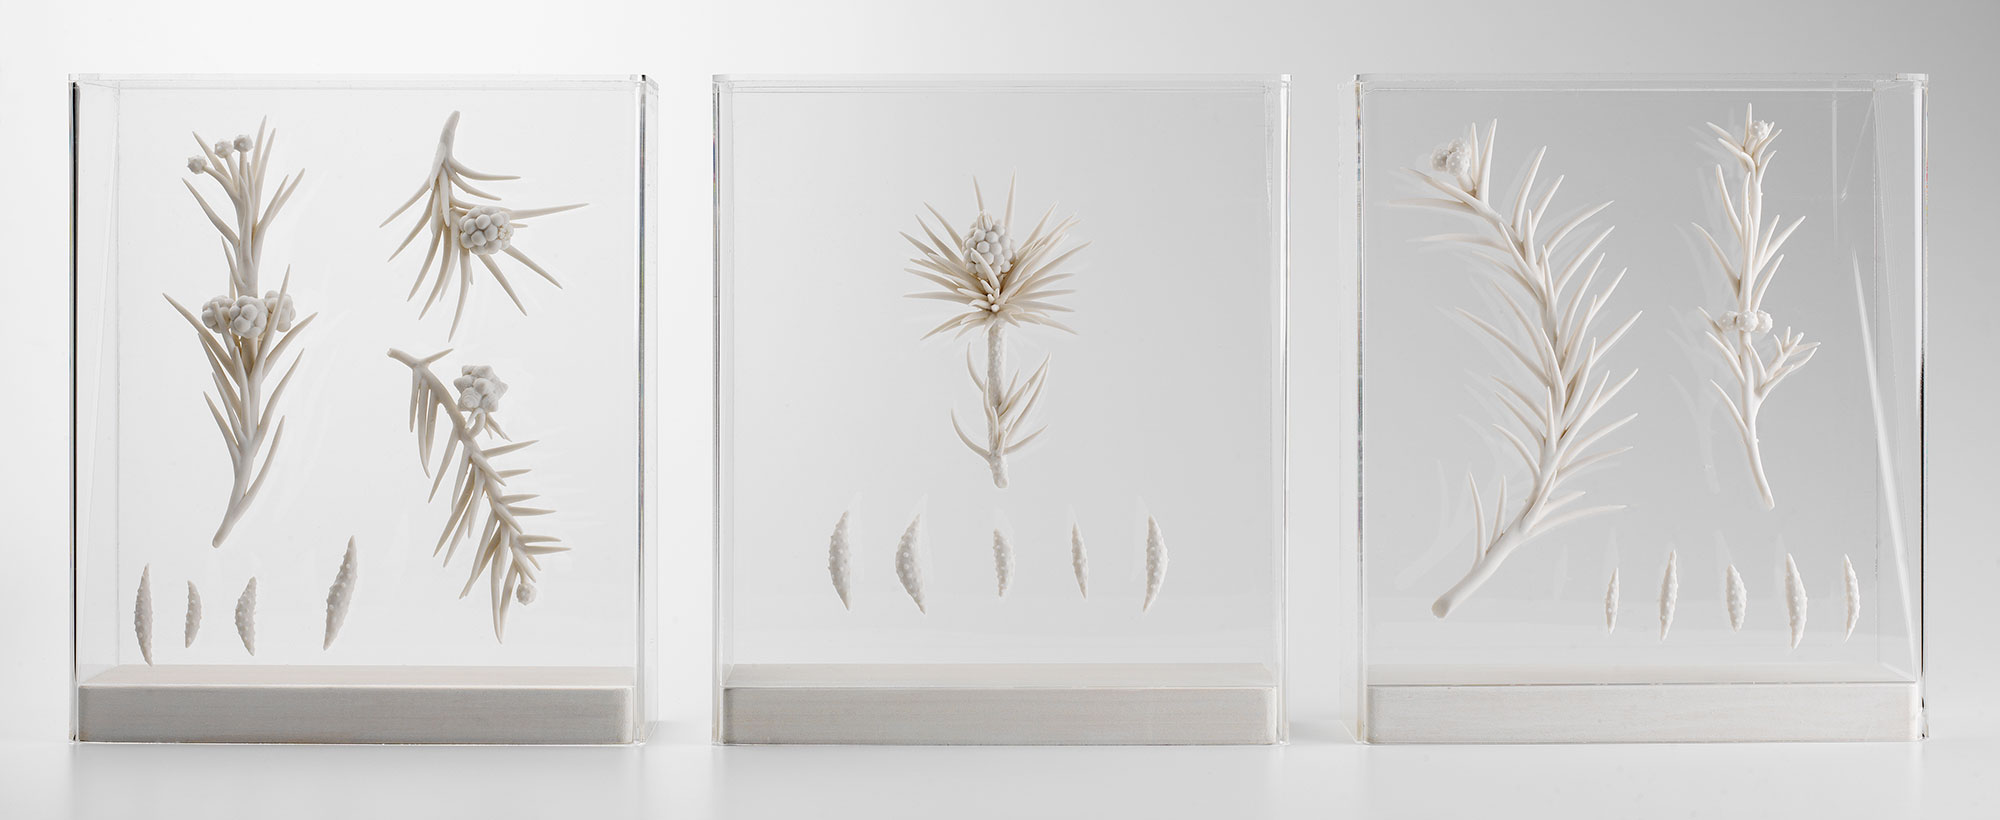 Lorna Fraser, Spirit Collection. Image Shannon Tofts